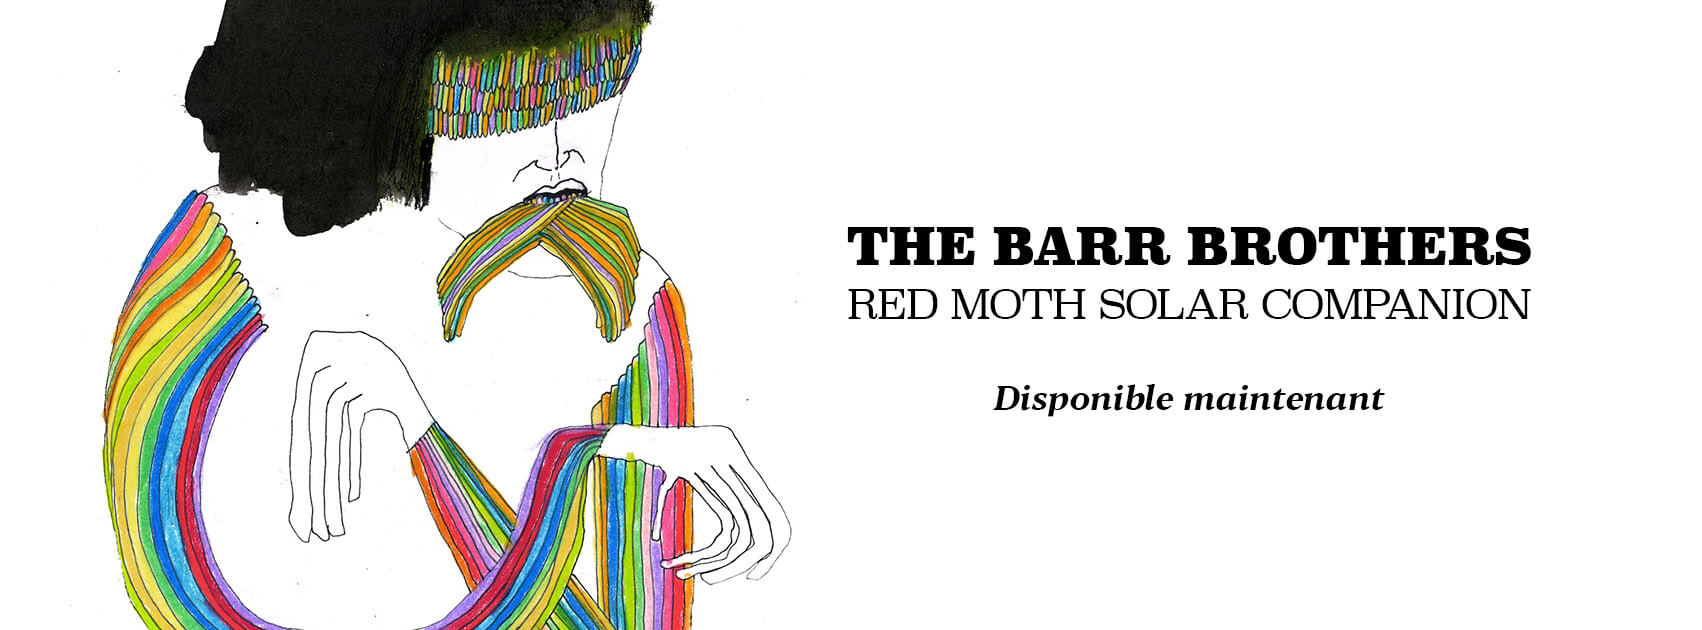 BarrBros-RedMoth-SCRWebsite-FR